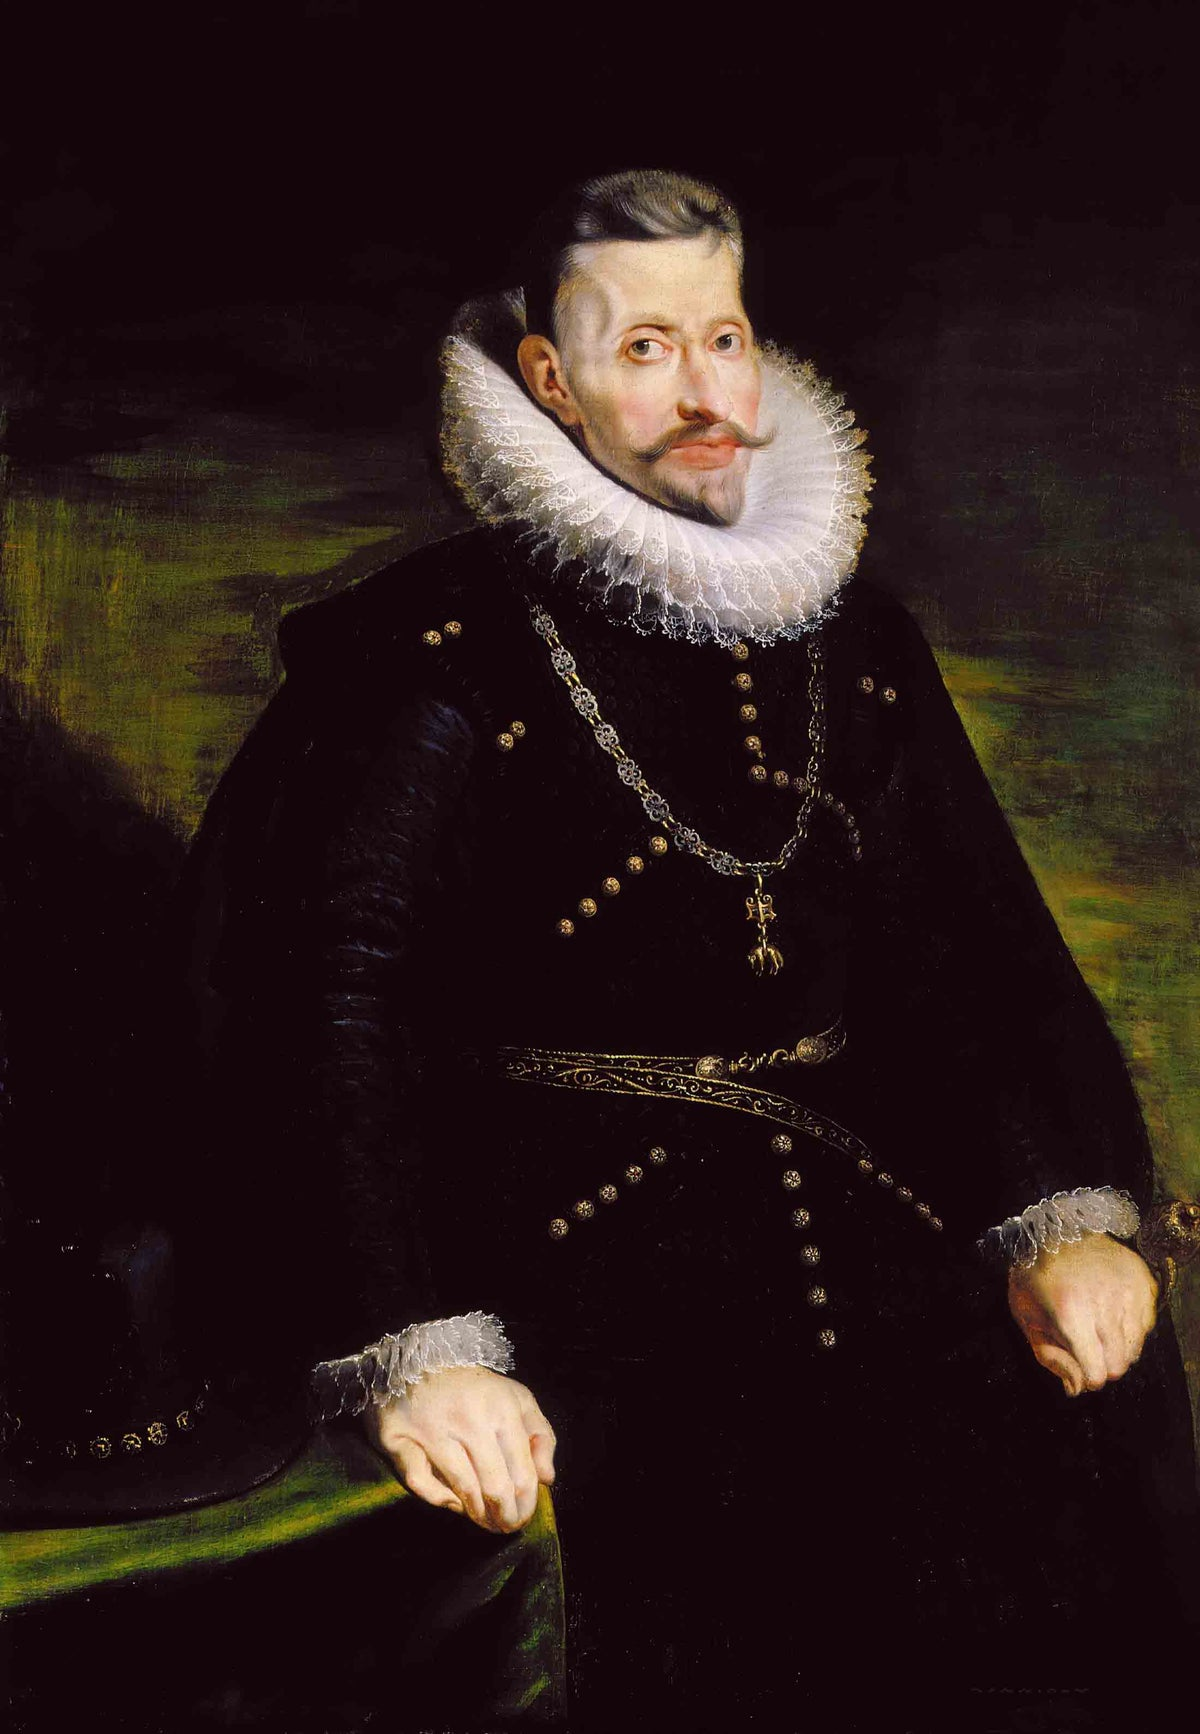 Portraits of Archduke Albrecht and Archduchess (c 1616-17). Artist: Peter Paul Rubens Home & Garden > Decor > Artwork > Posters, Prints, & Visual Artwork ArtToyourlife